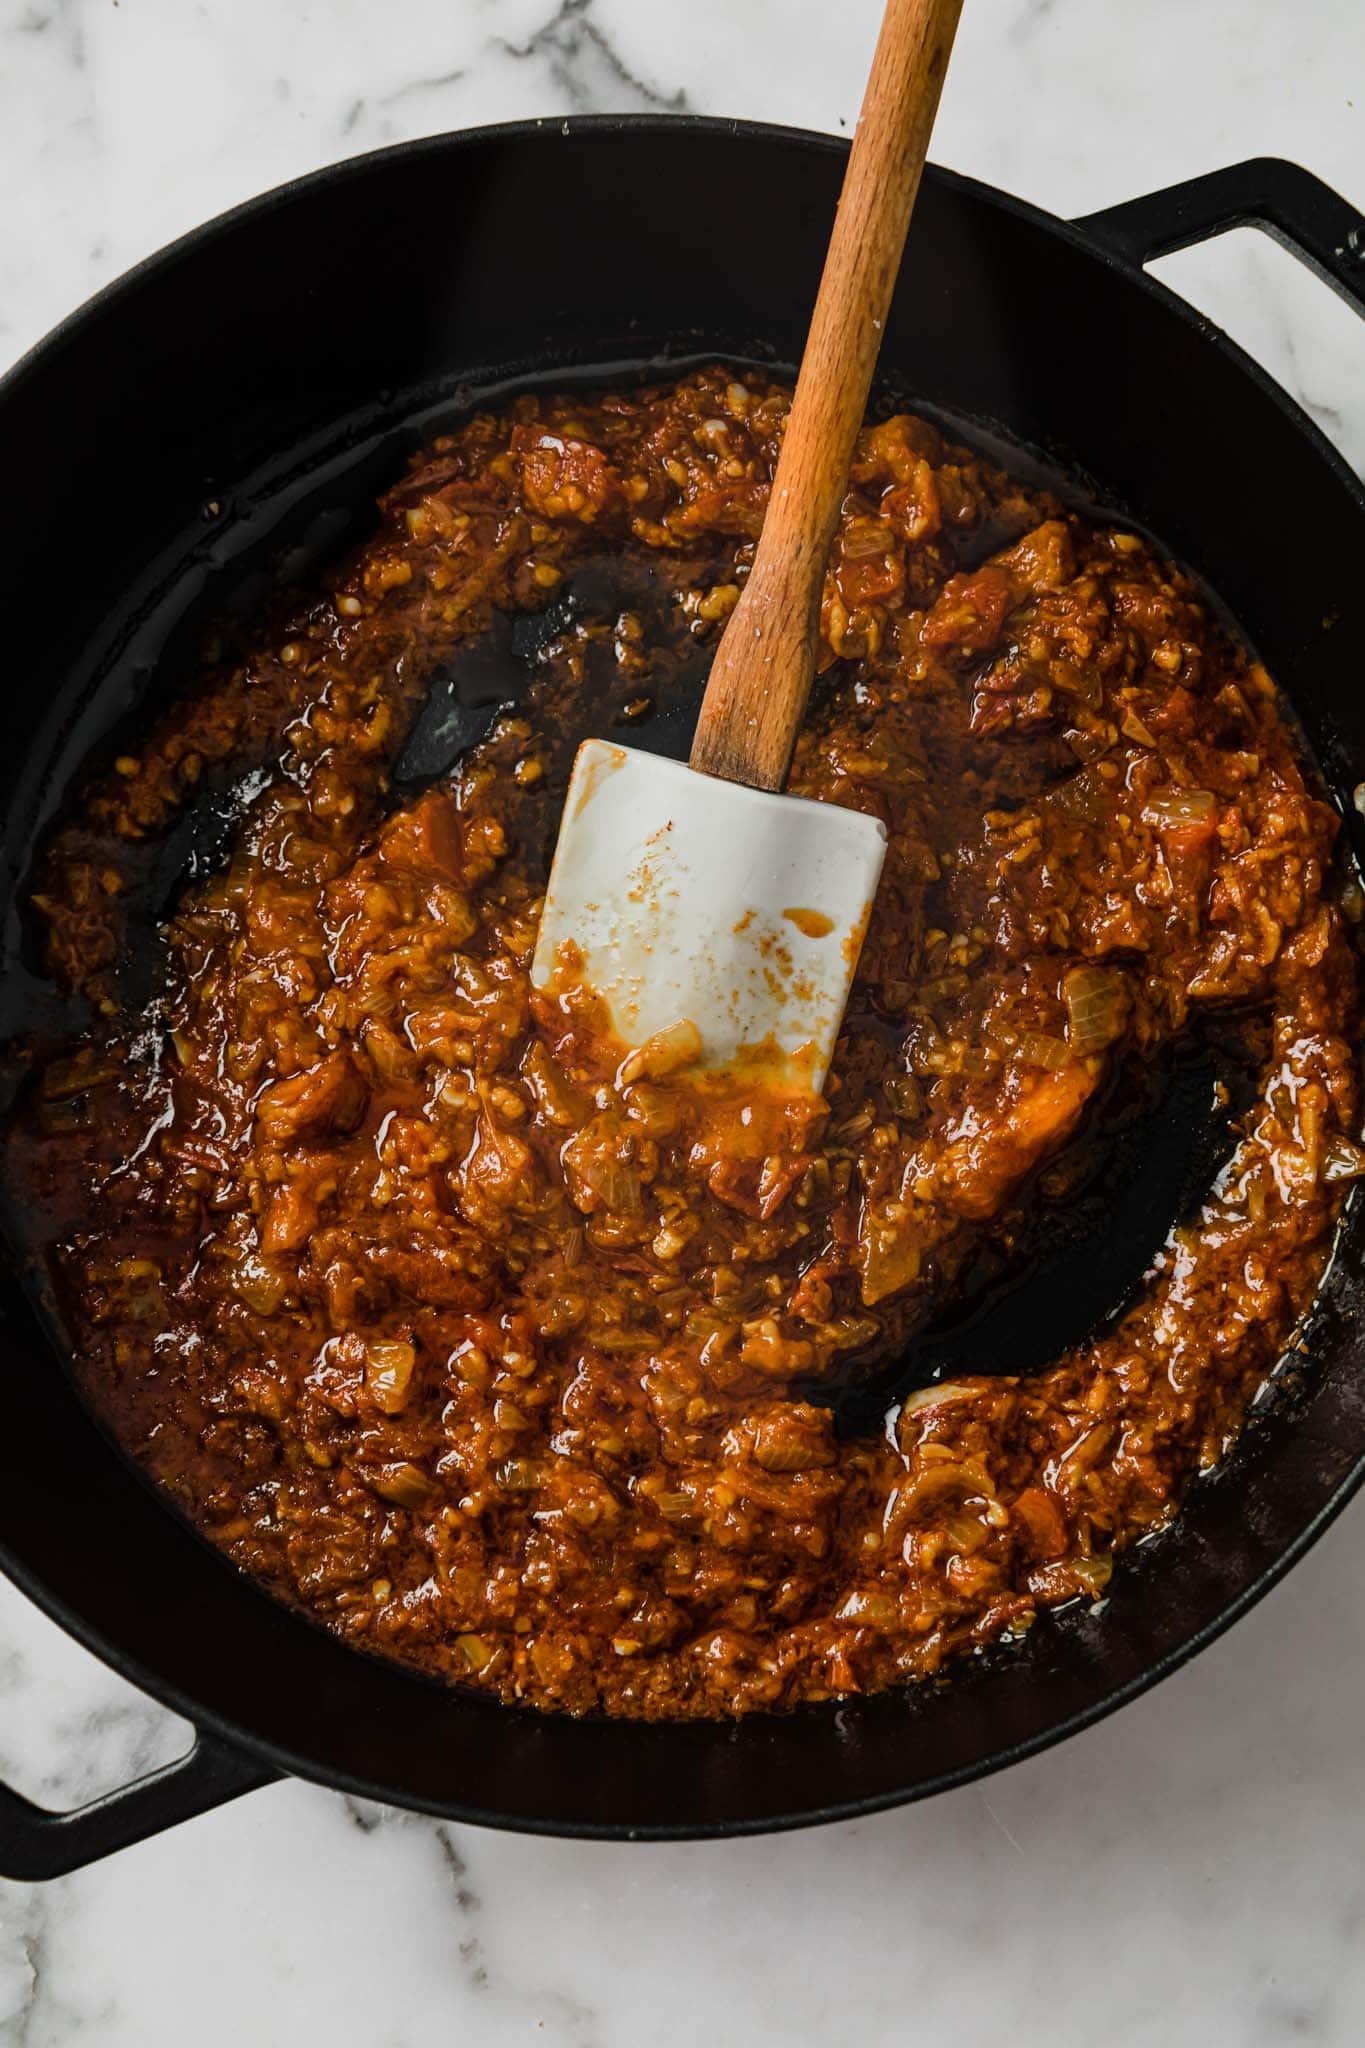 Sauteed tomato and onion masala for baingan bharta in a black pan with wooden spatula